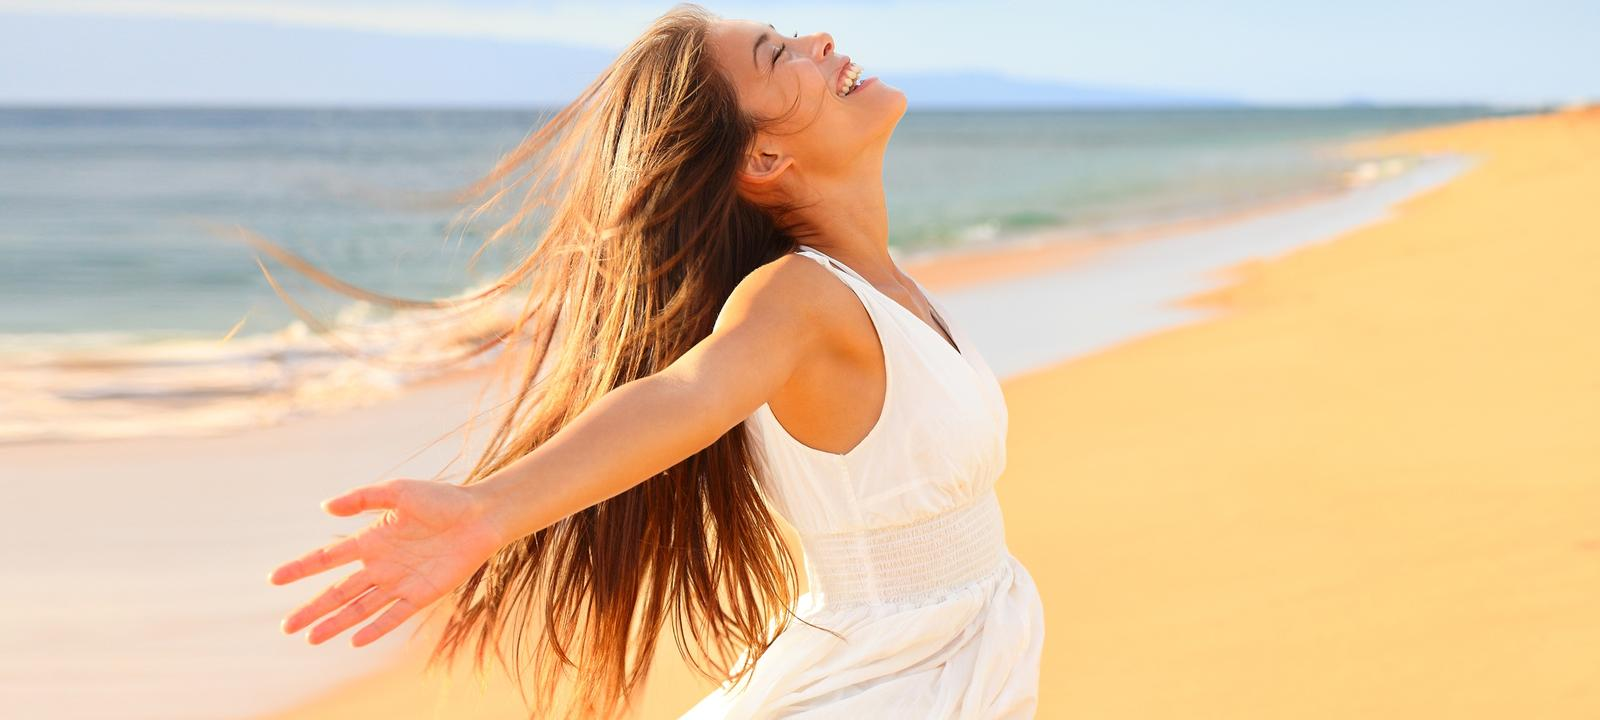 Juvederm Injections Treatment New Jersey